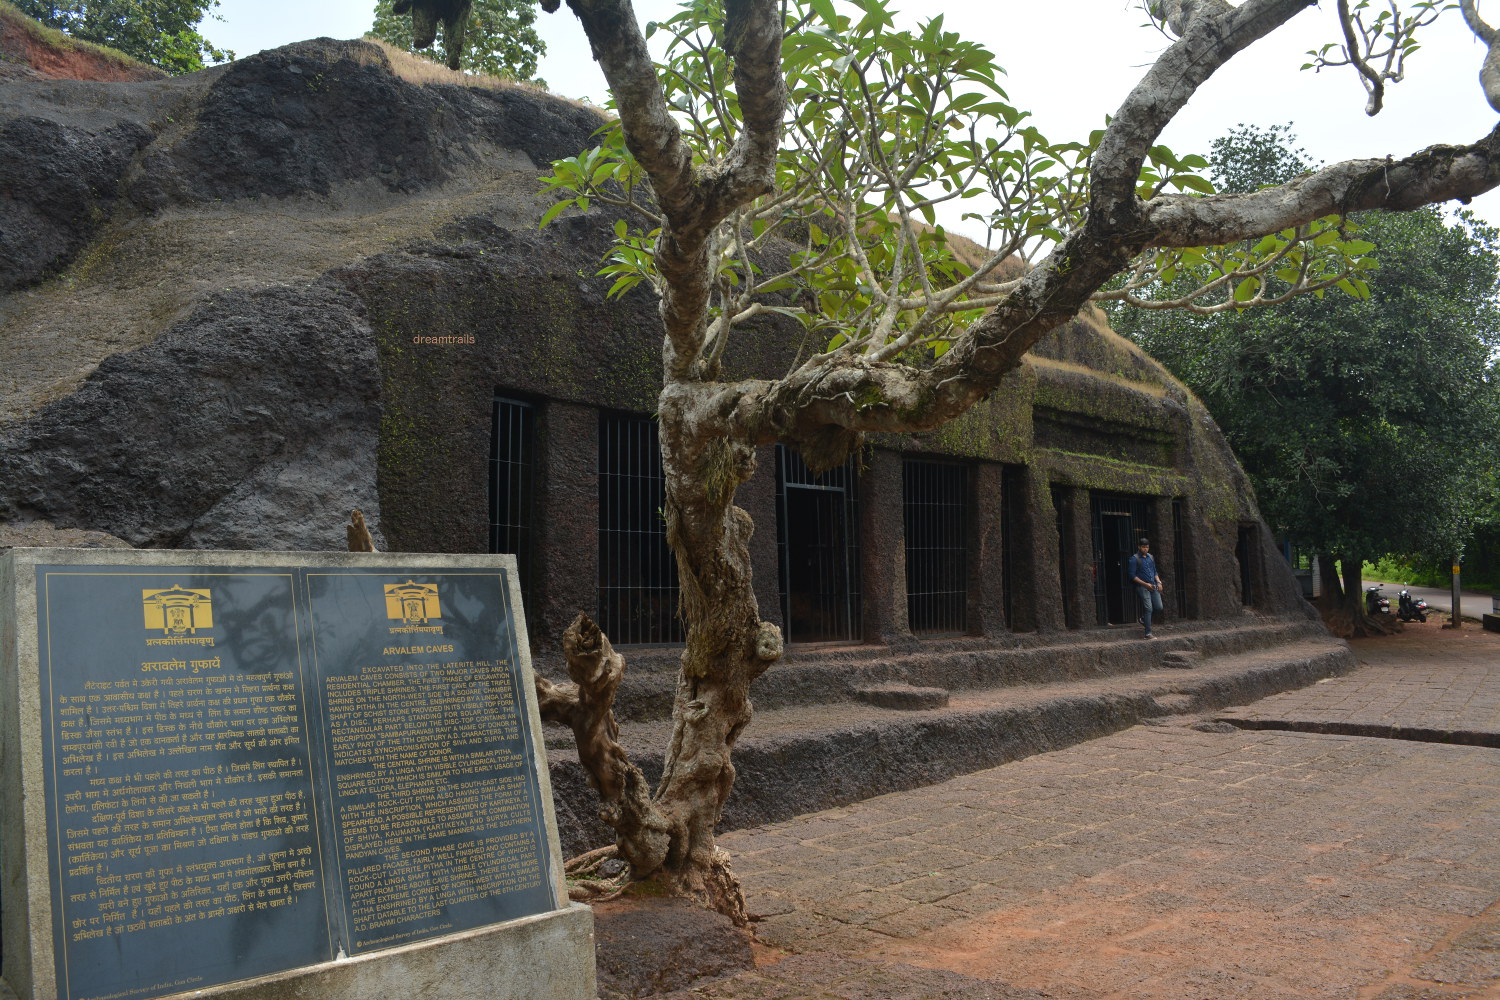 Aravalem / Harvalem Caves, Goa